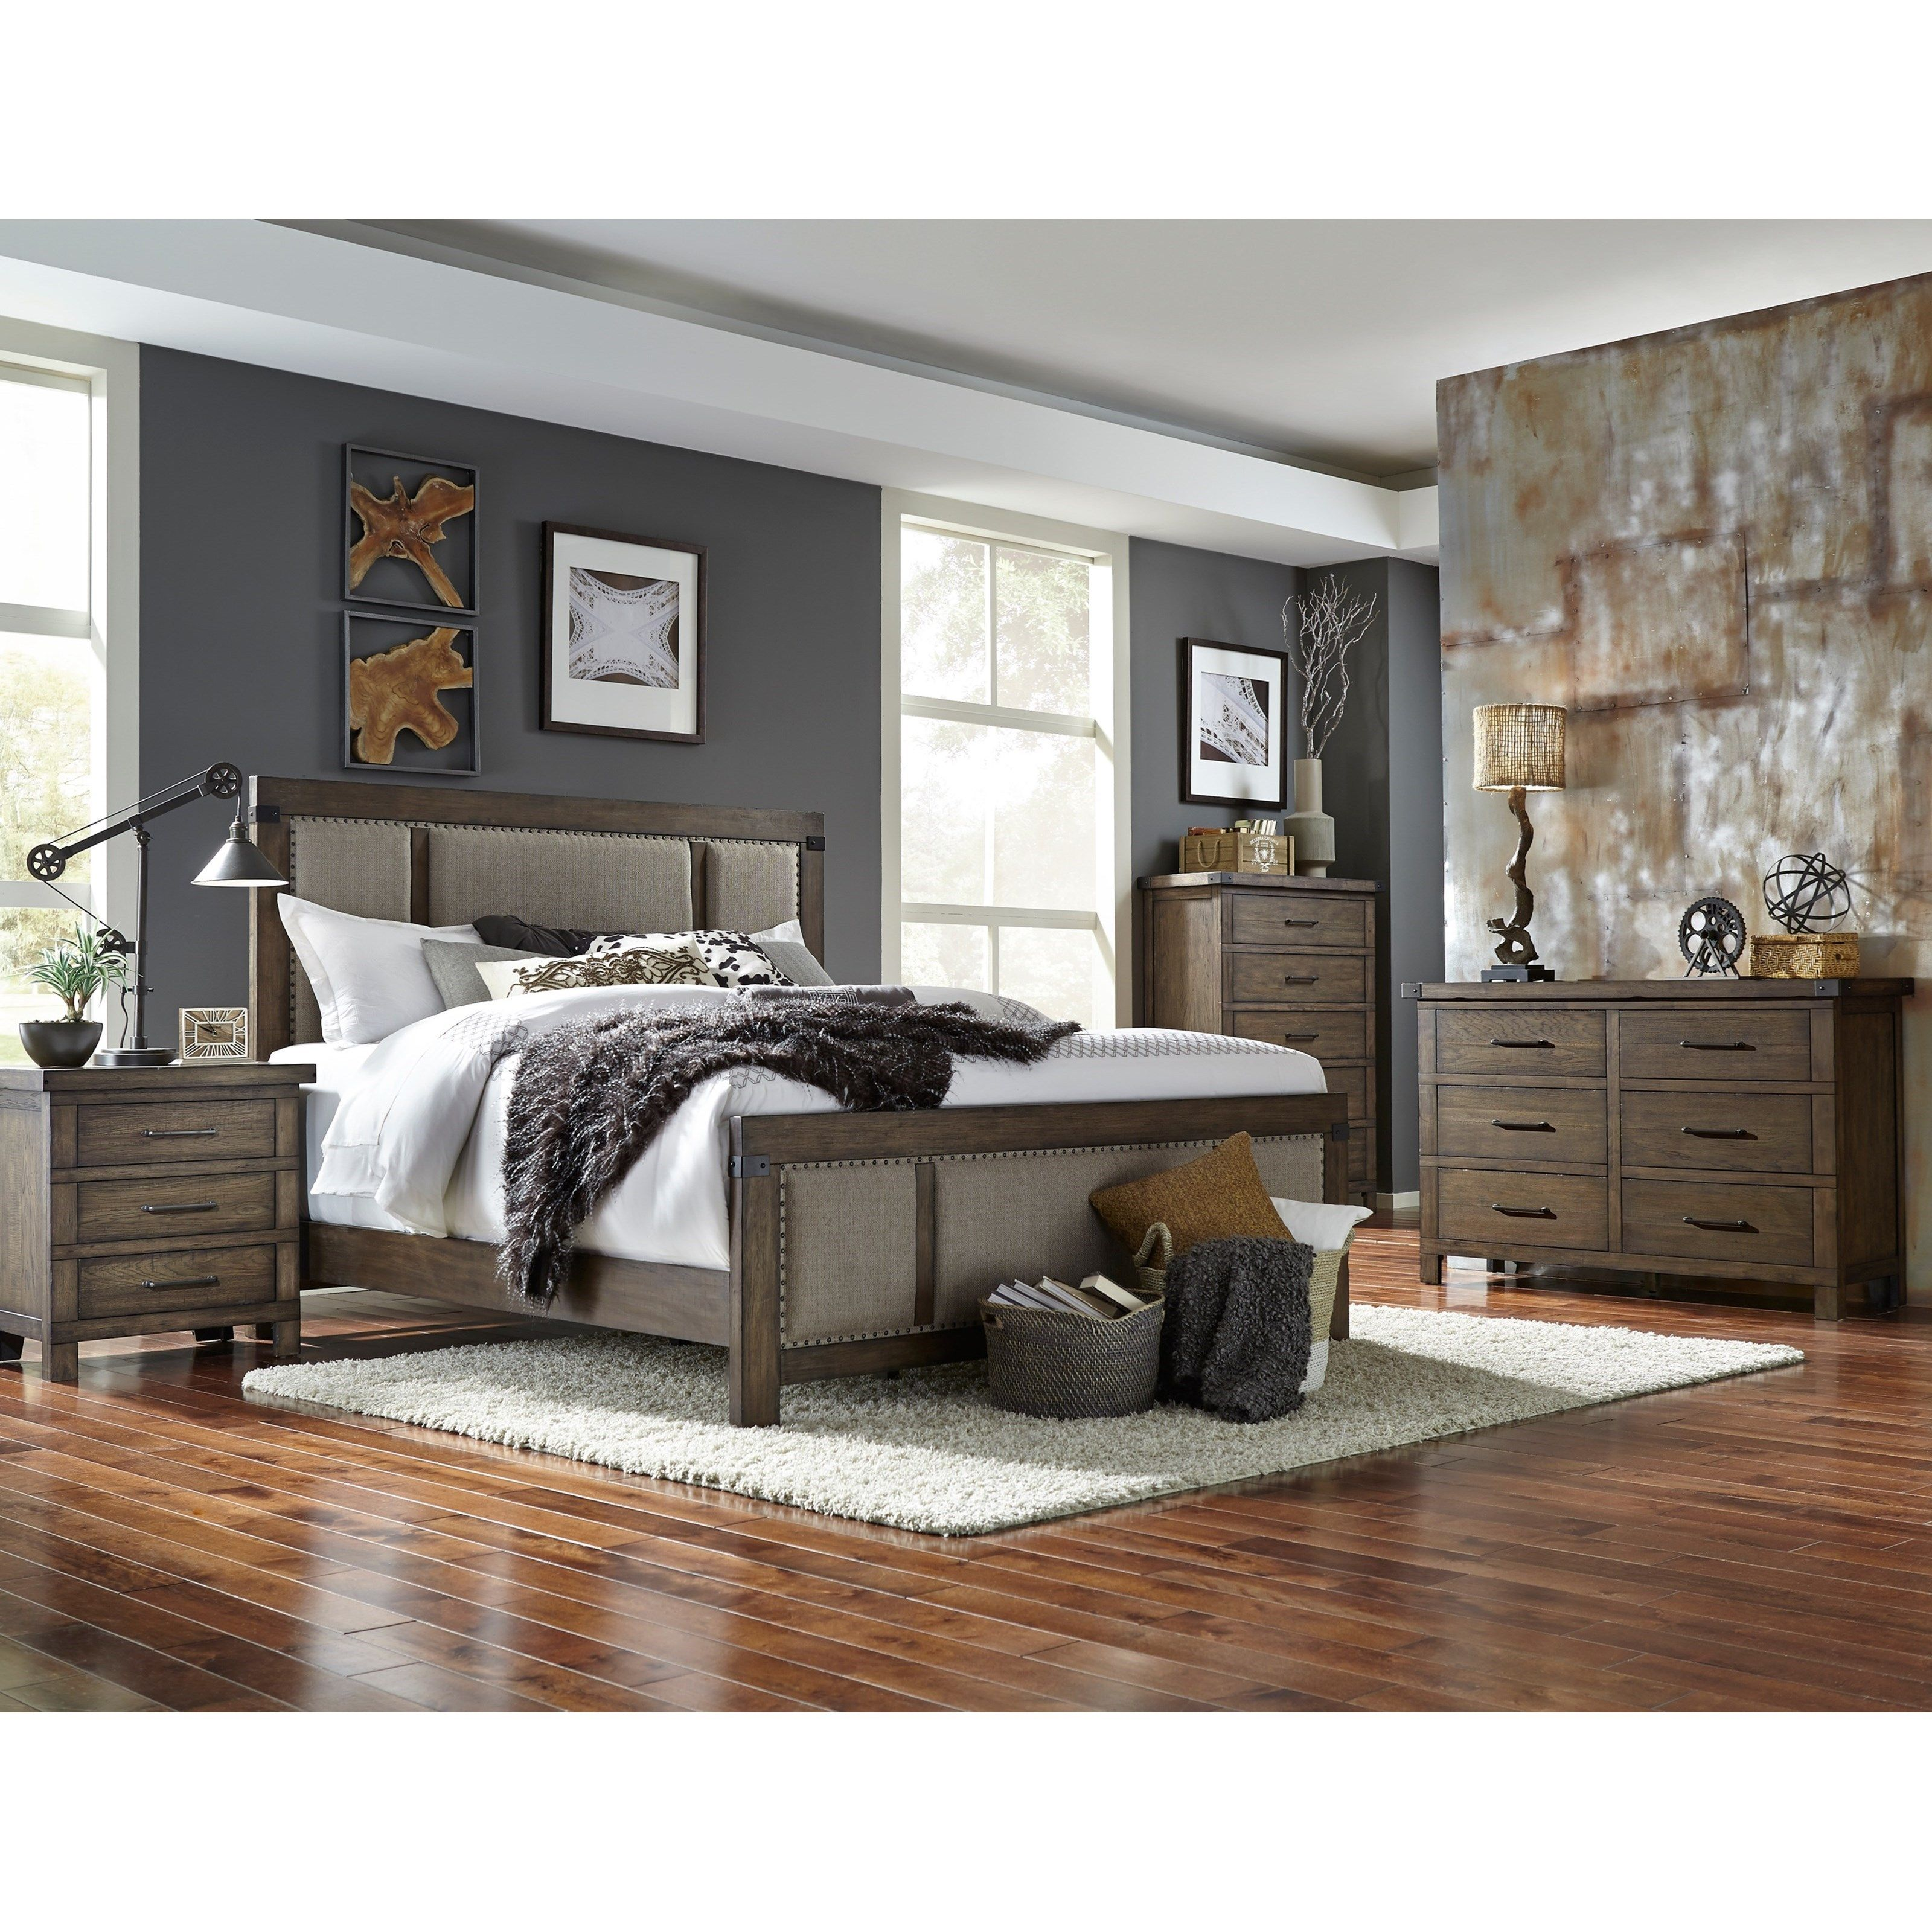 Larimer Square Queen Bedroom Group By Broyhill Furniture At Becker